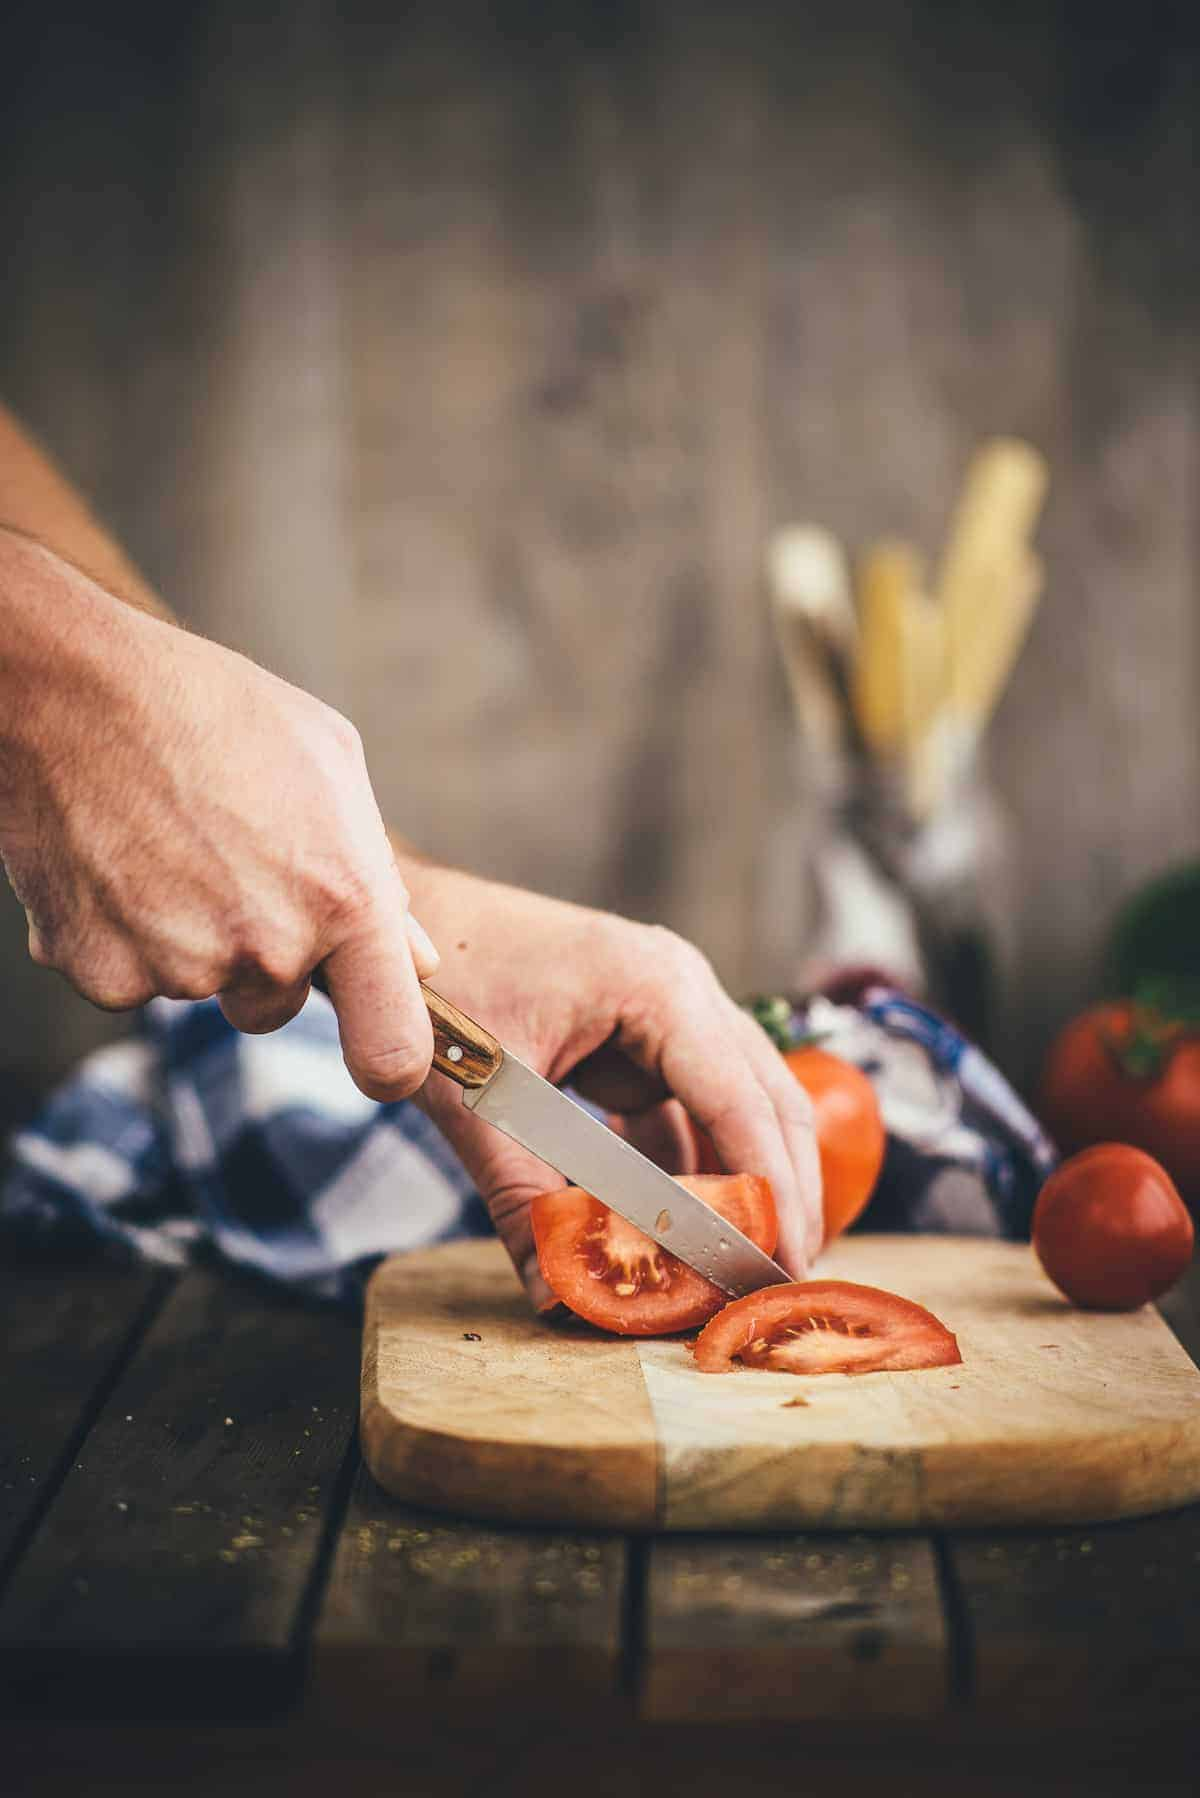 tomatoes being sliced on chopping board